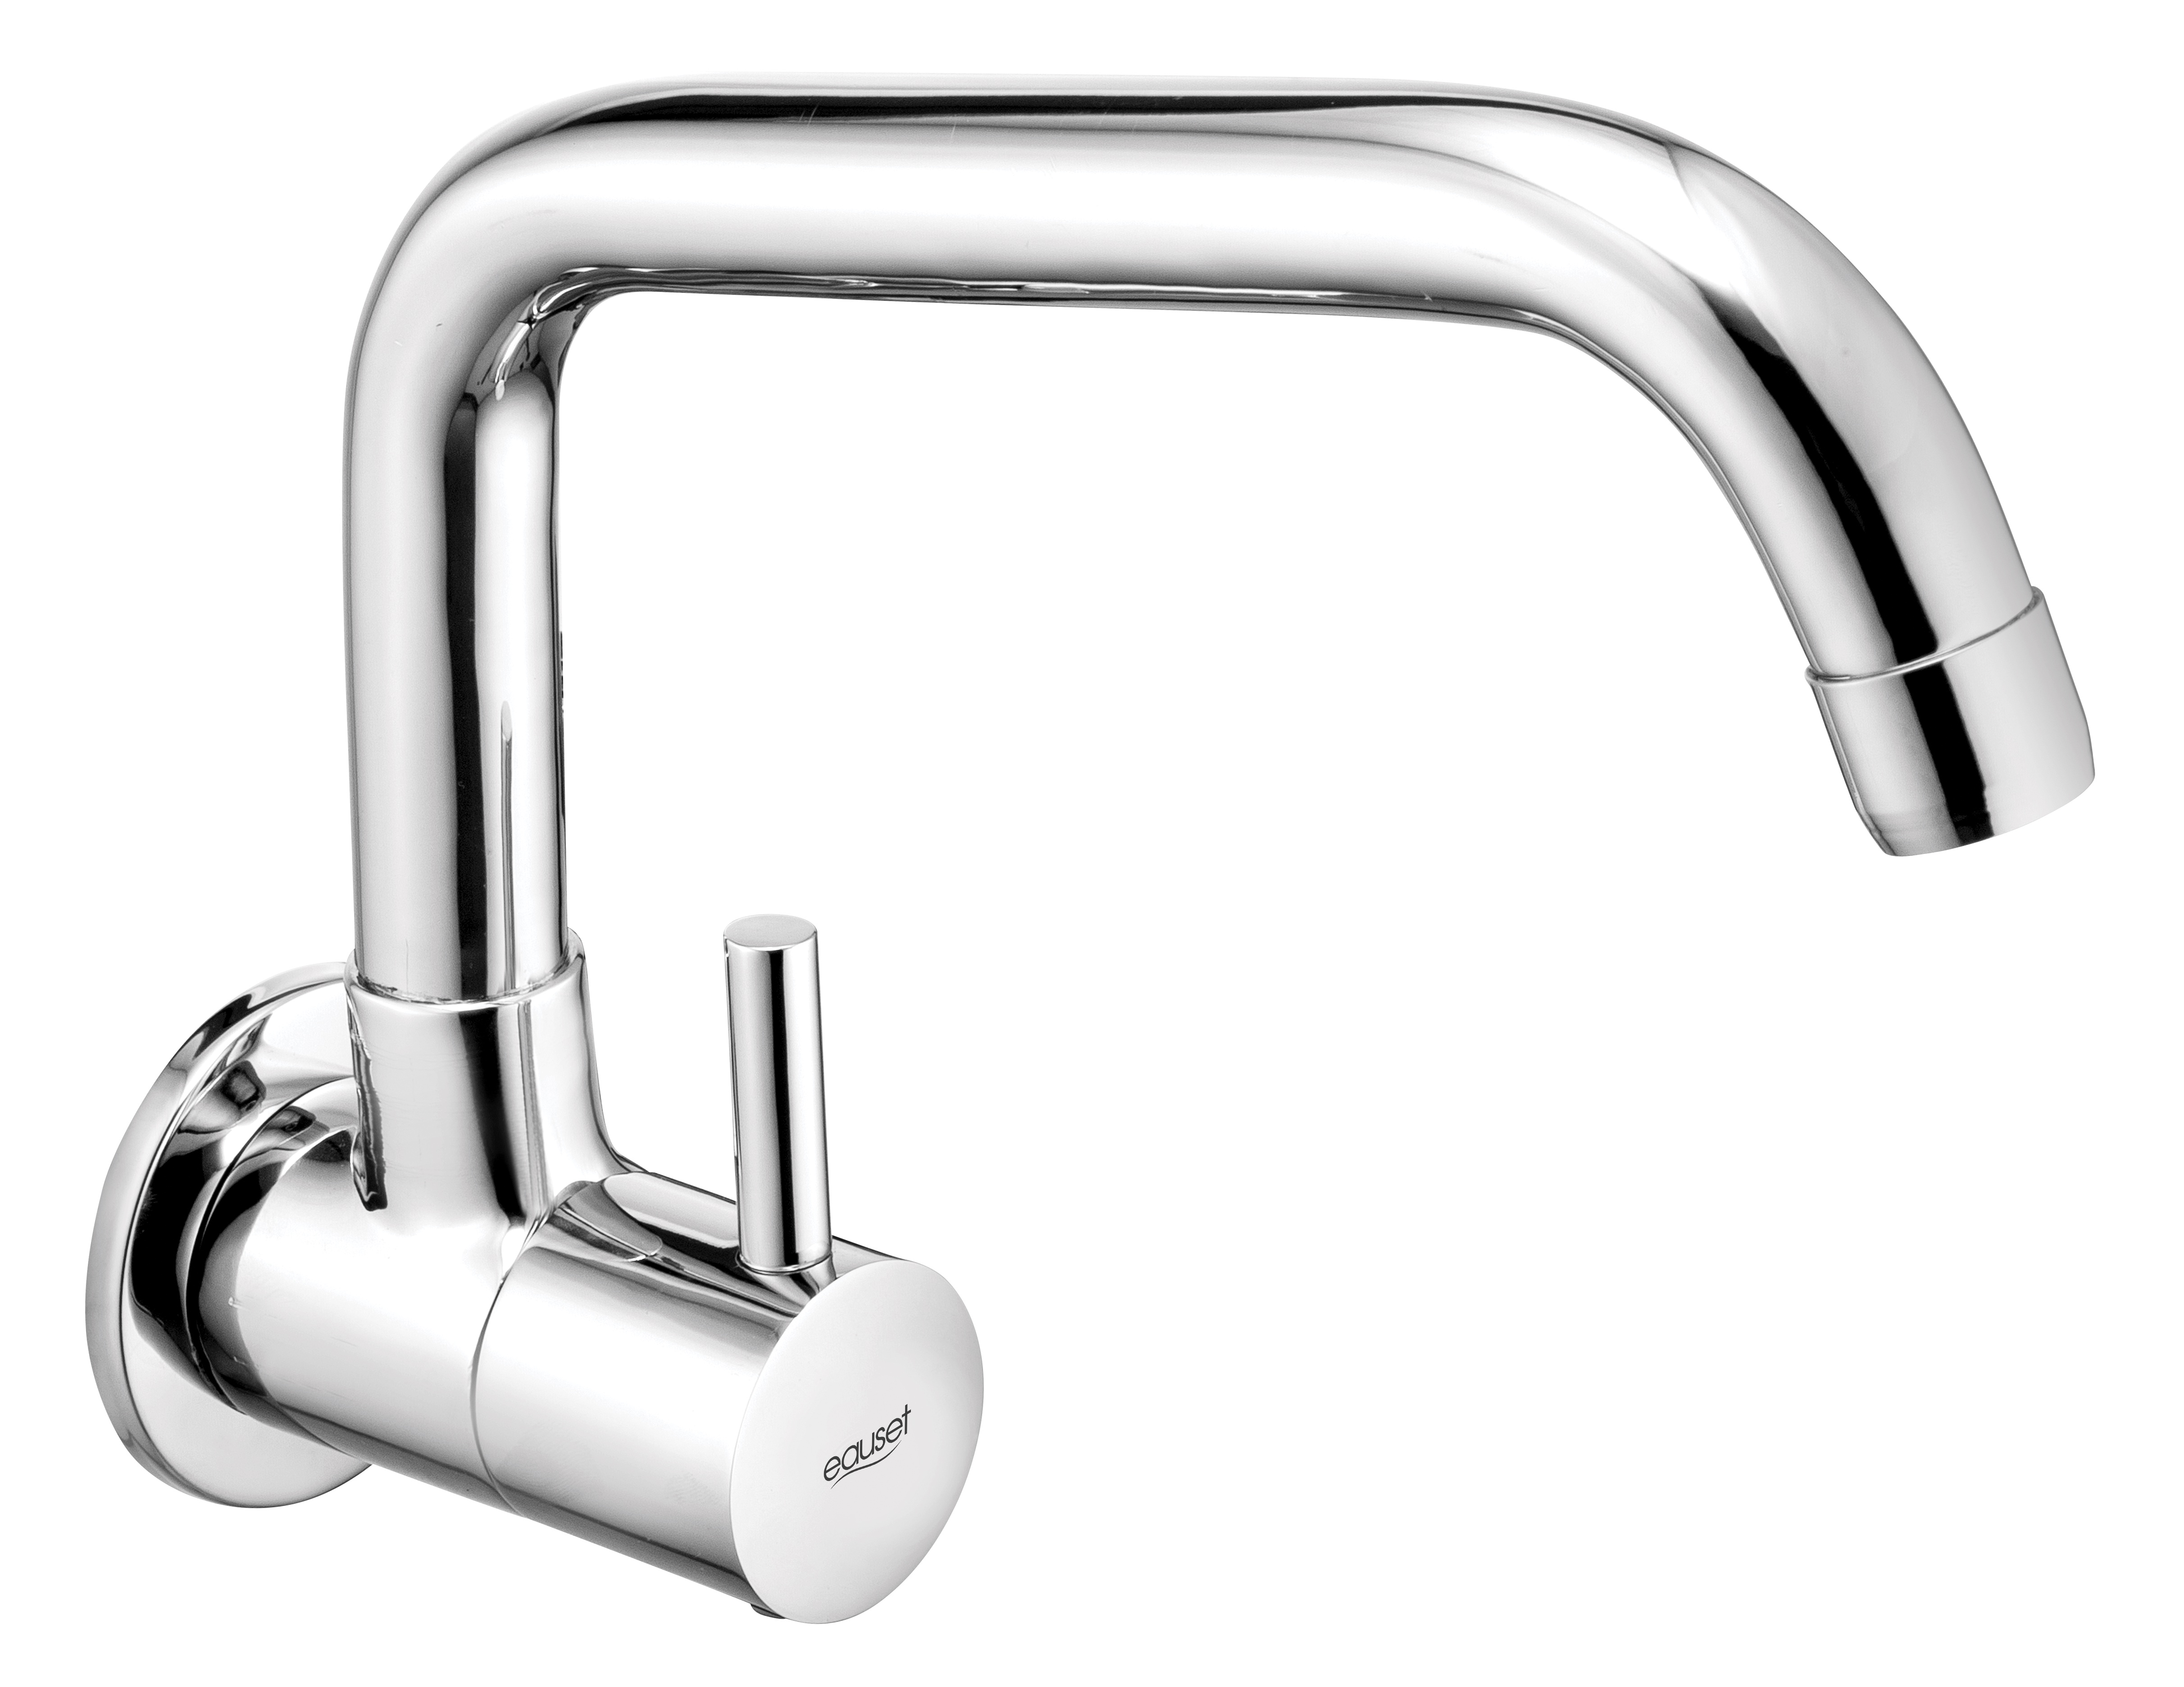 Sink Cock With Swinging Spout (Extended ) Wall Mounted With Wall Flange